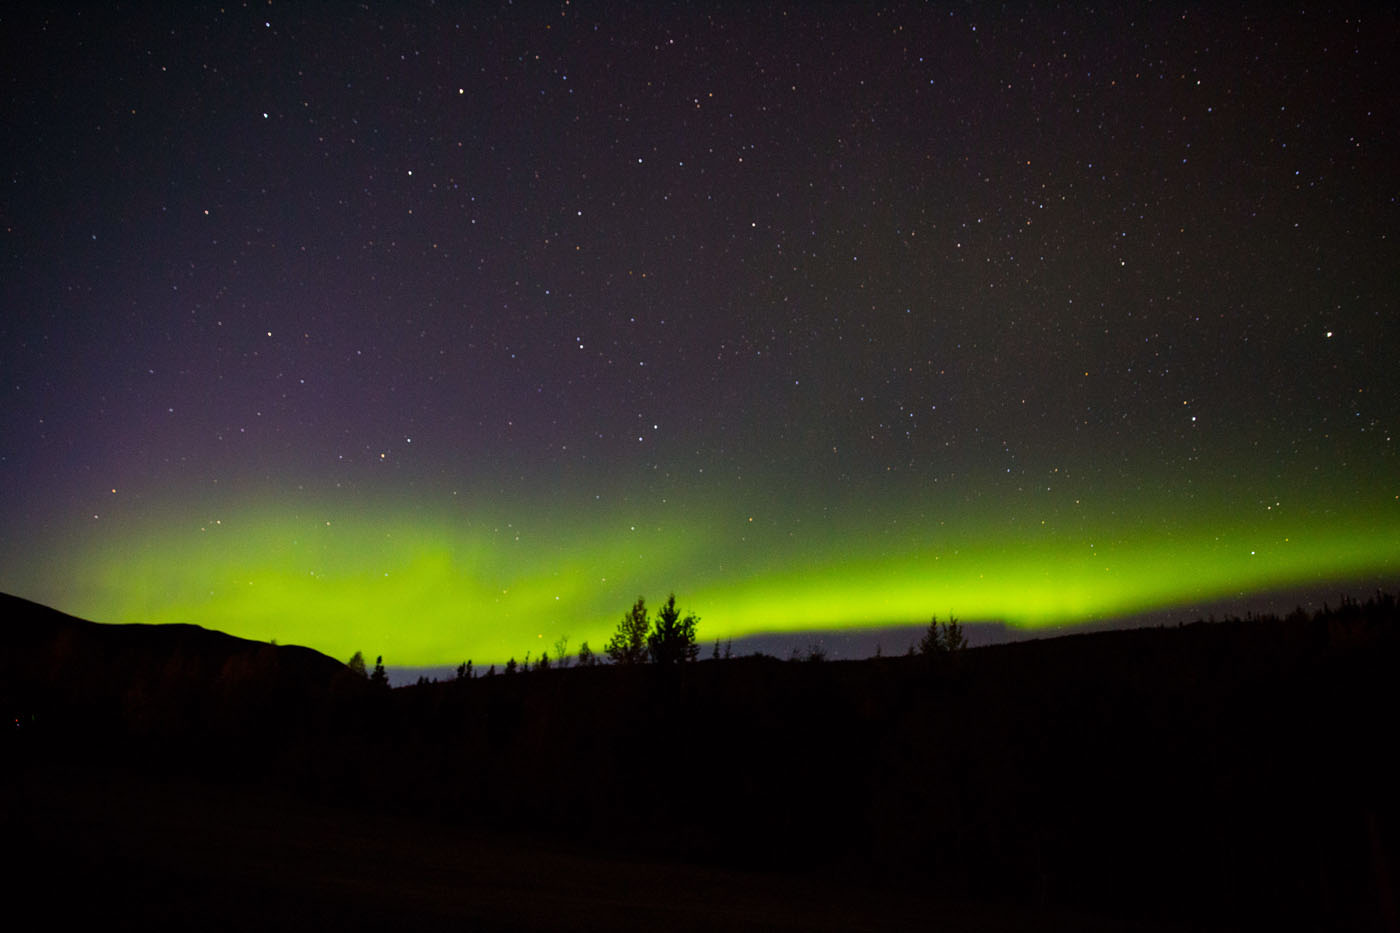 Trying to capture the northern lights without a tripod was a little difficult but I managed to capture a couple.